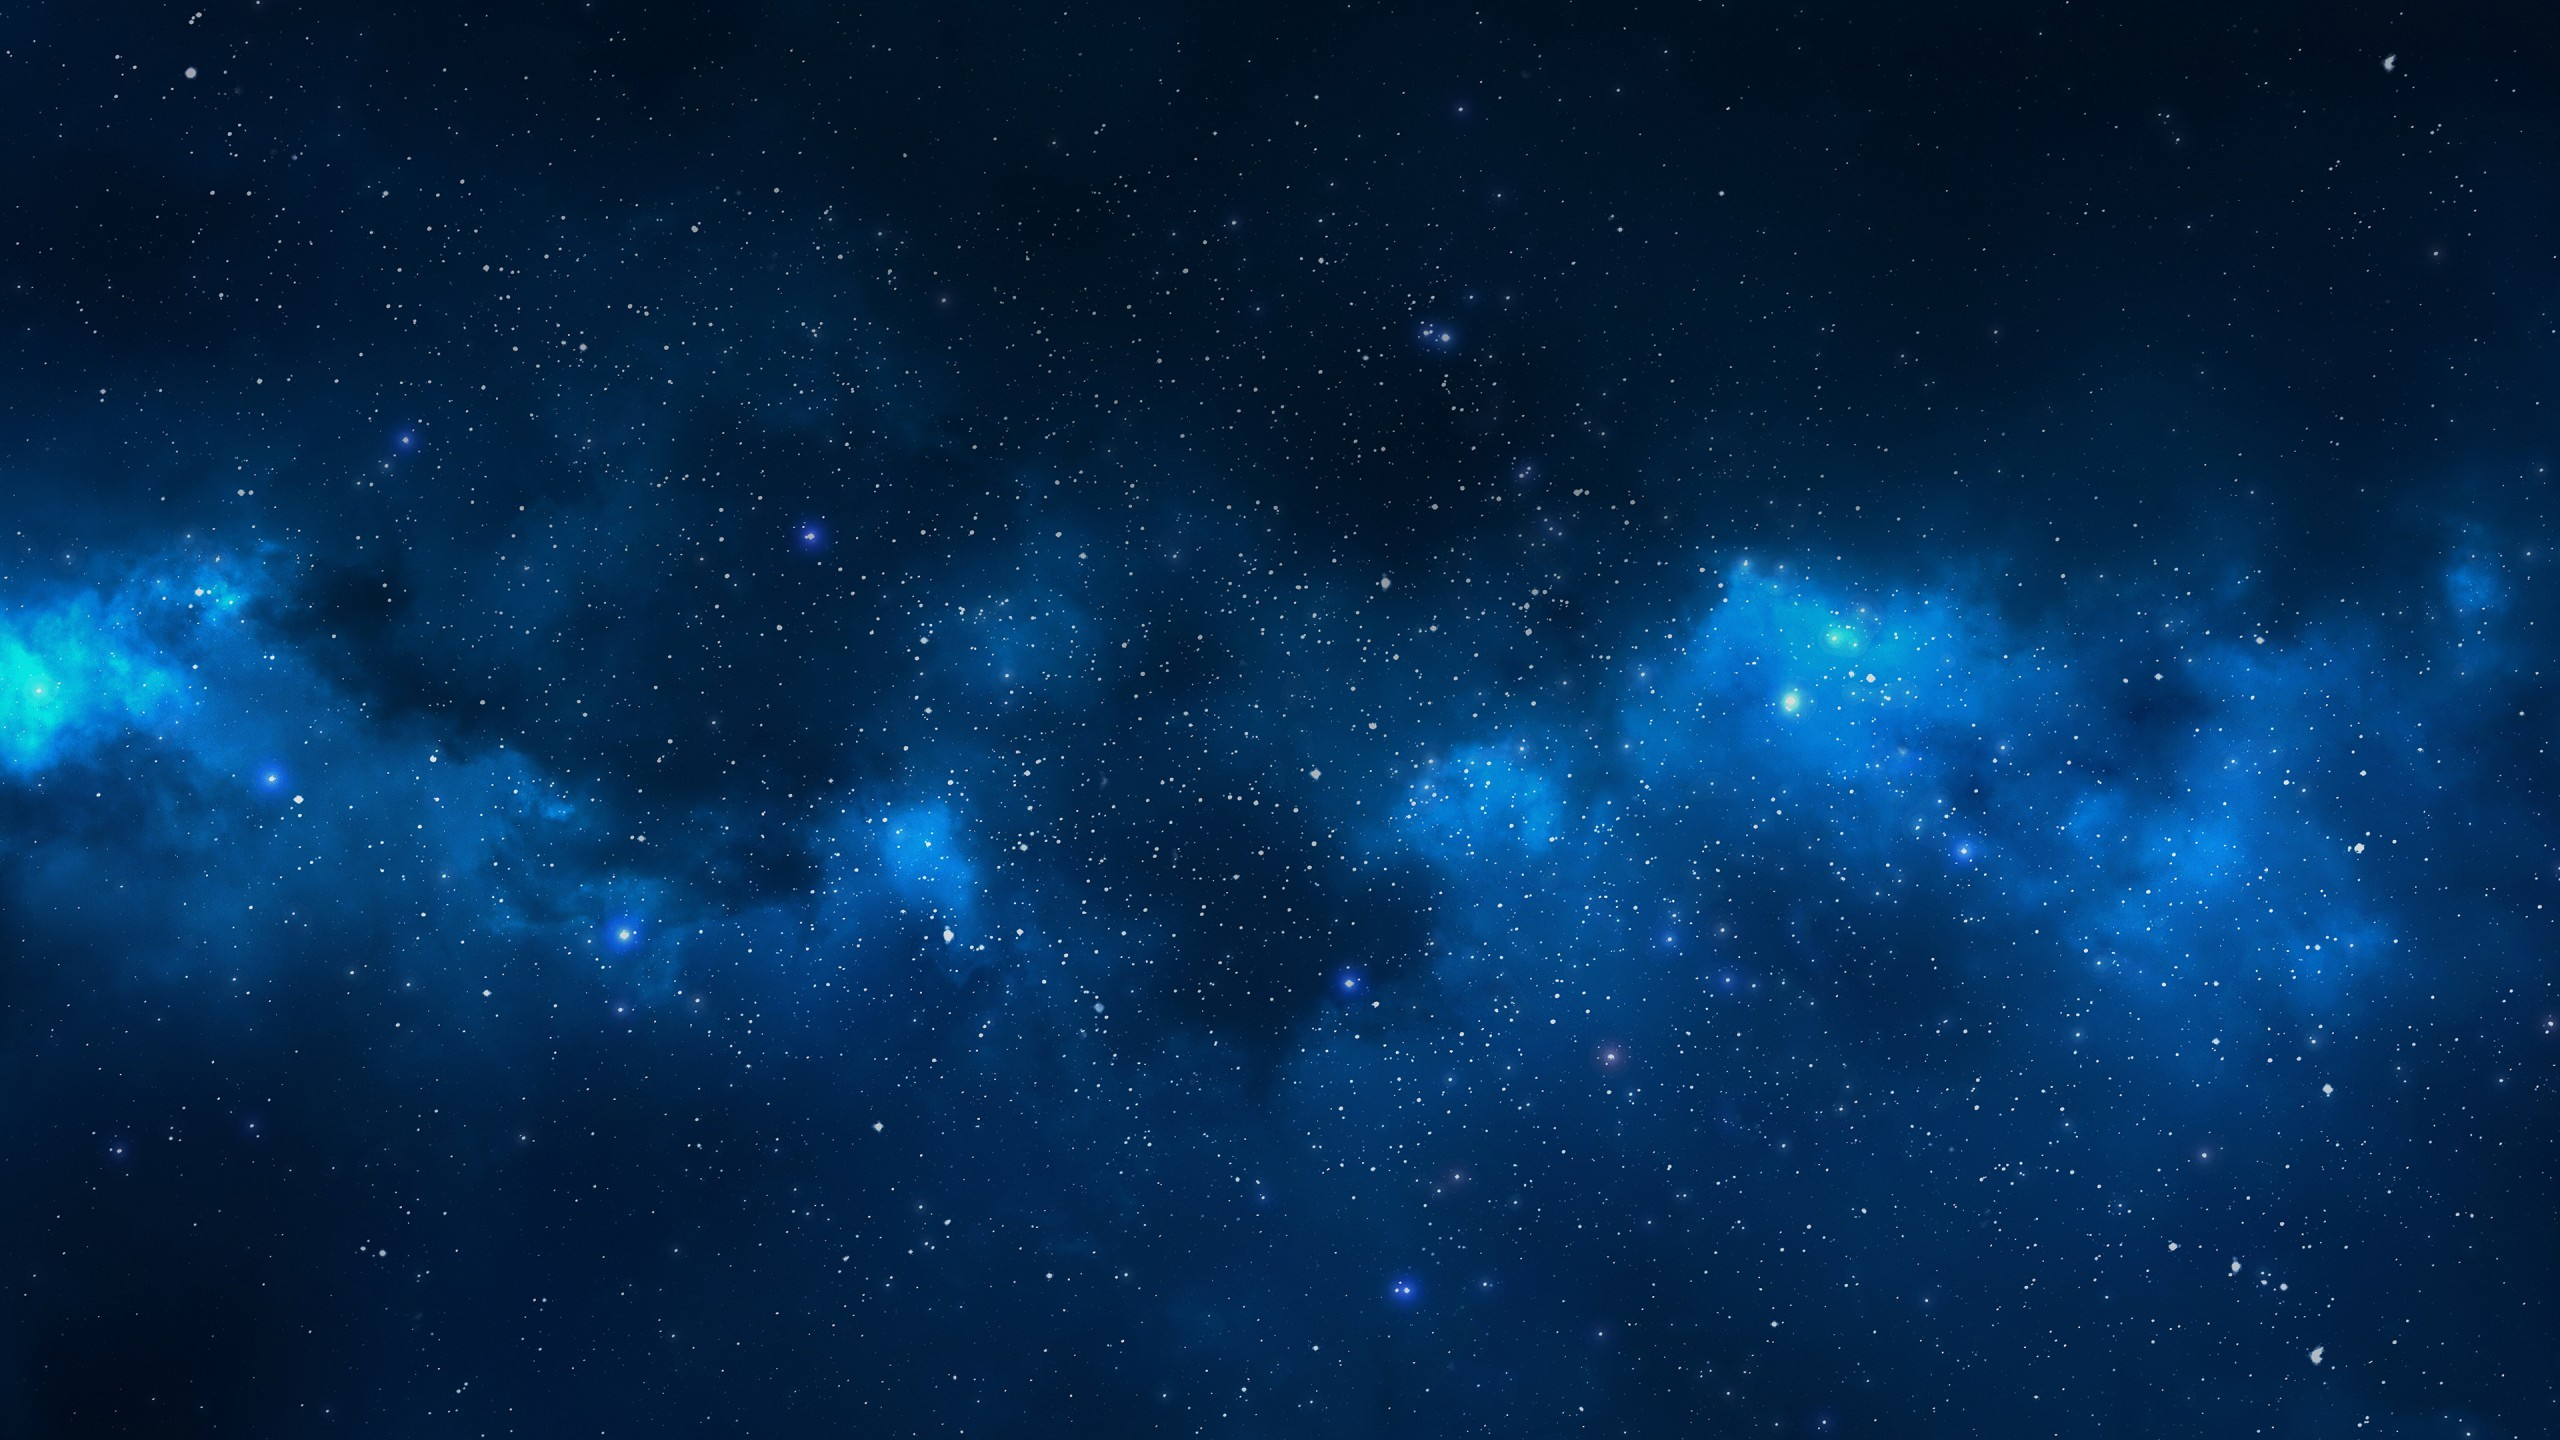 1366x768 Space Wallpaper 79 Images